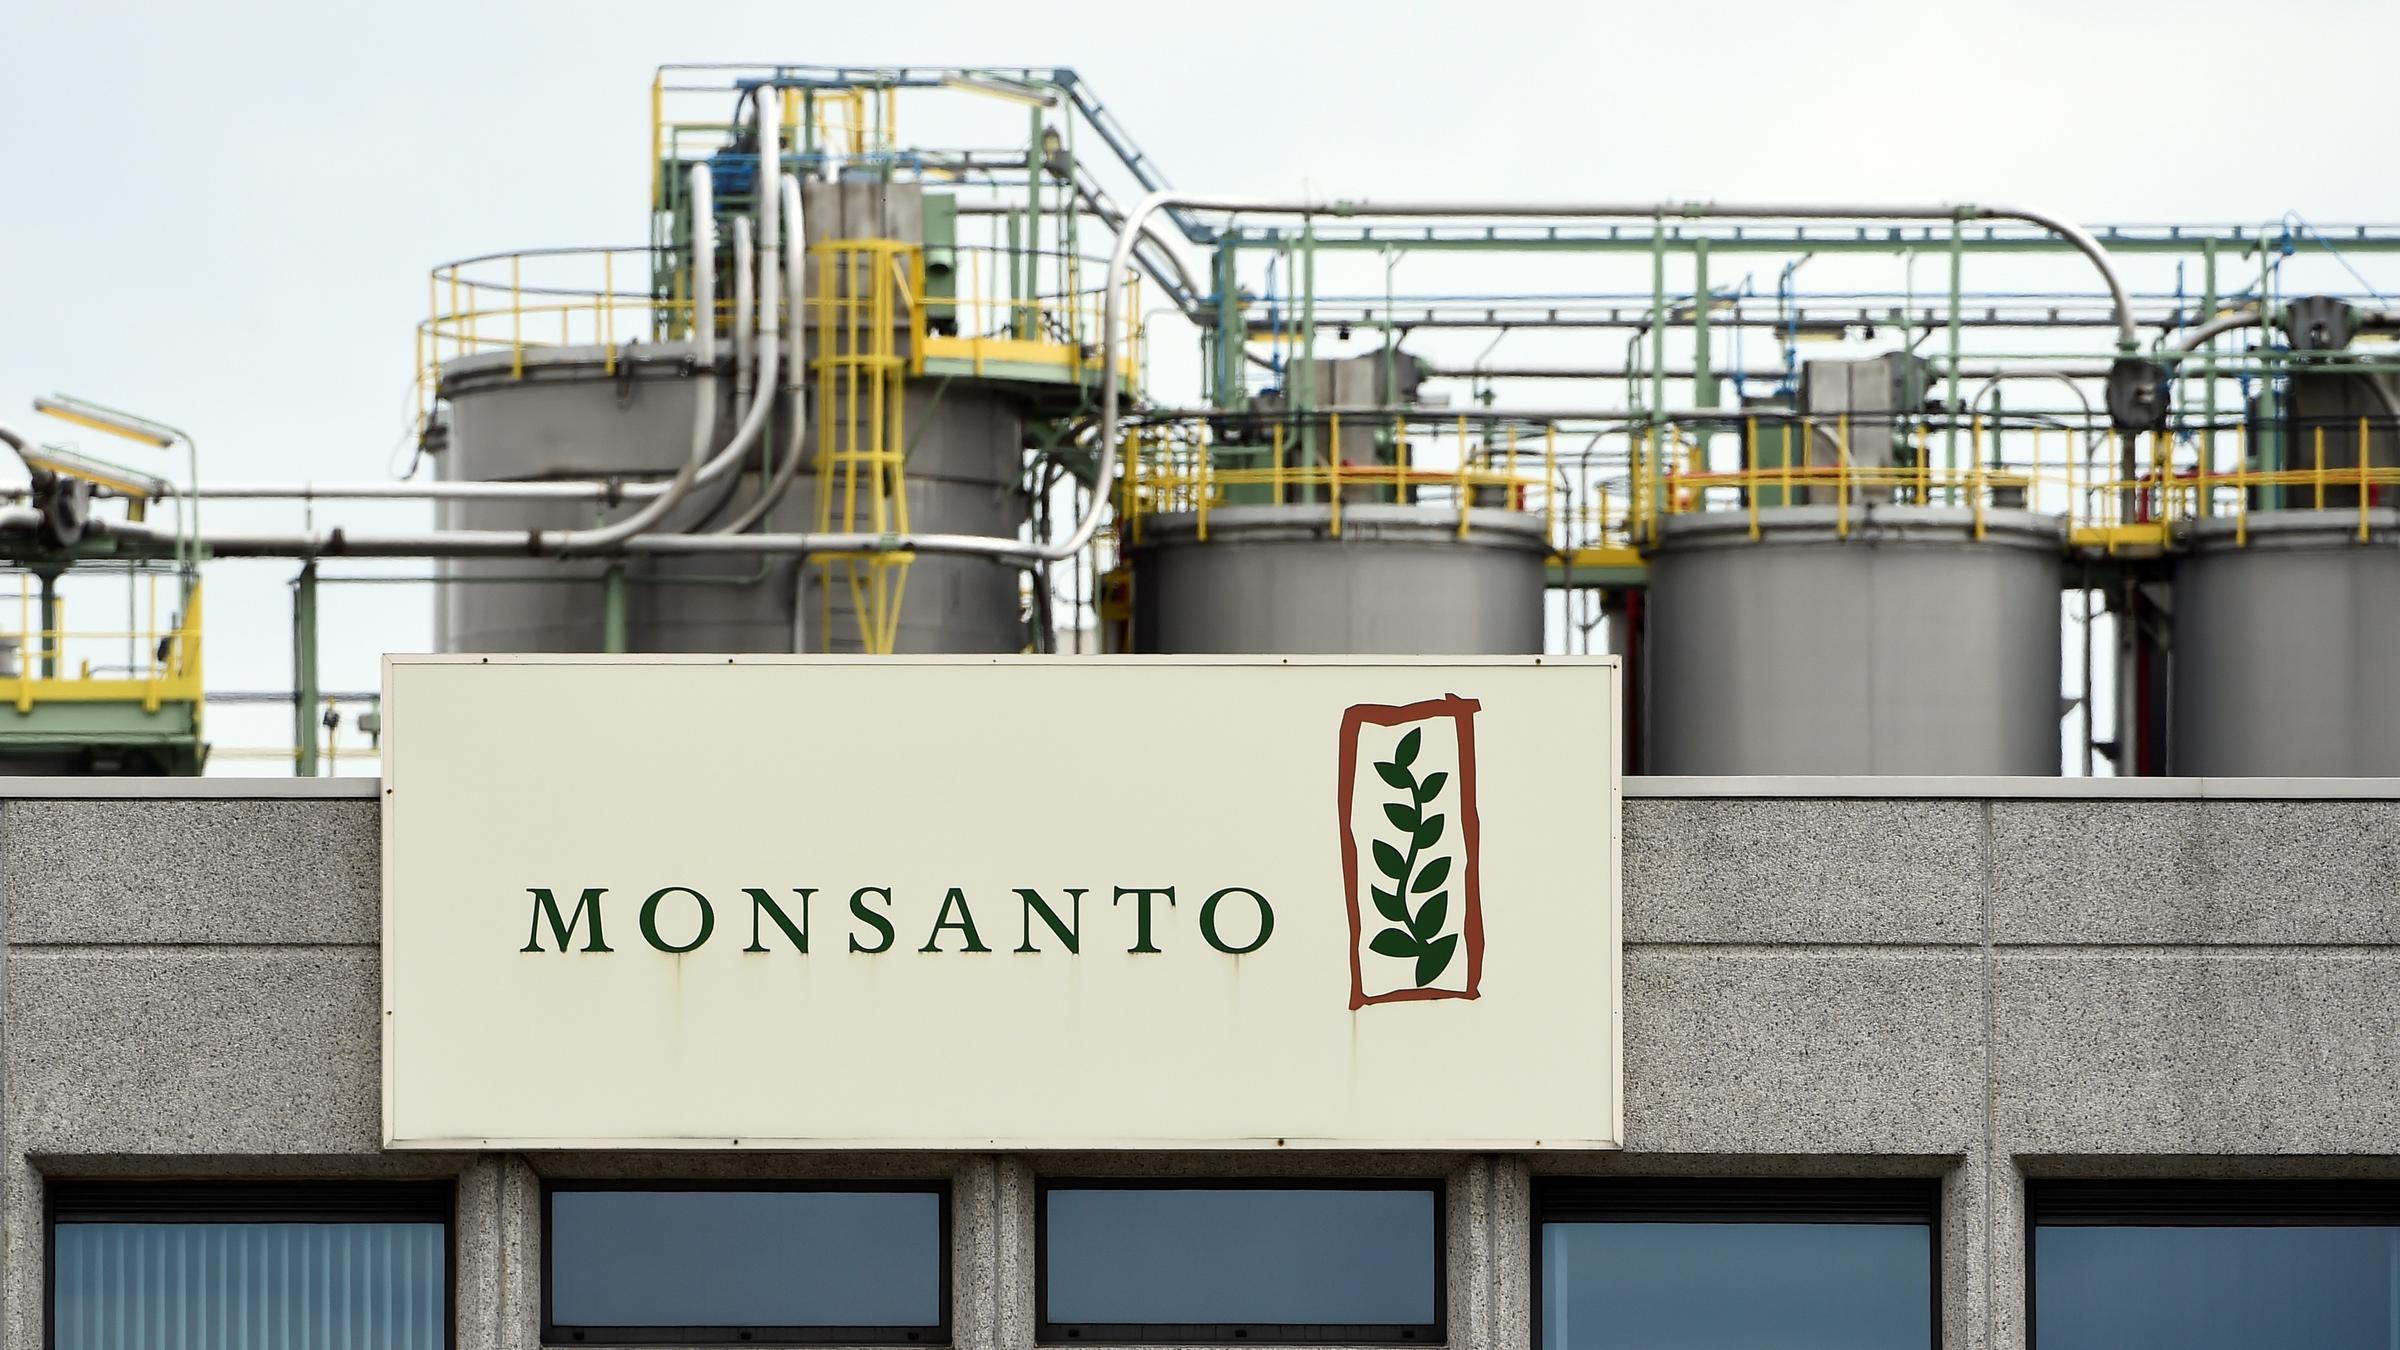 Chemical giant bayer agrees to buy monsanto for 66 billion krcb the monsanto logo on a building at the firm manufacturing site and operations center near antwerp belgium on may 24 buycottarizona Image collections